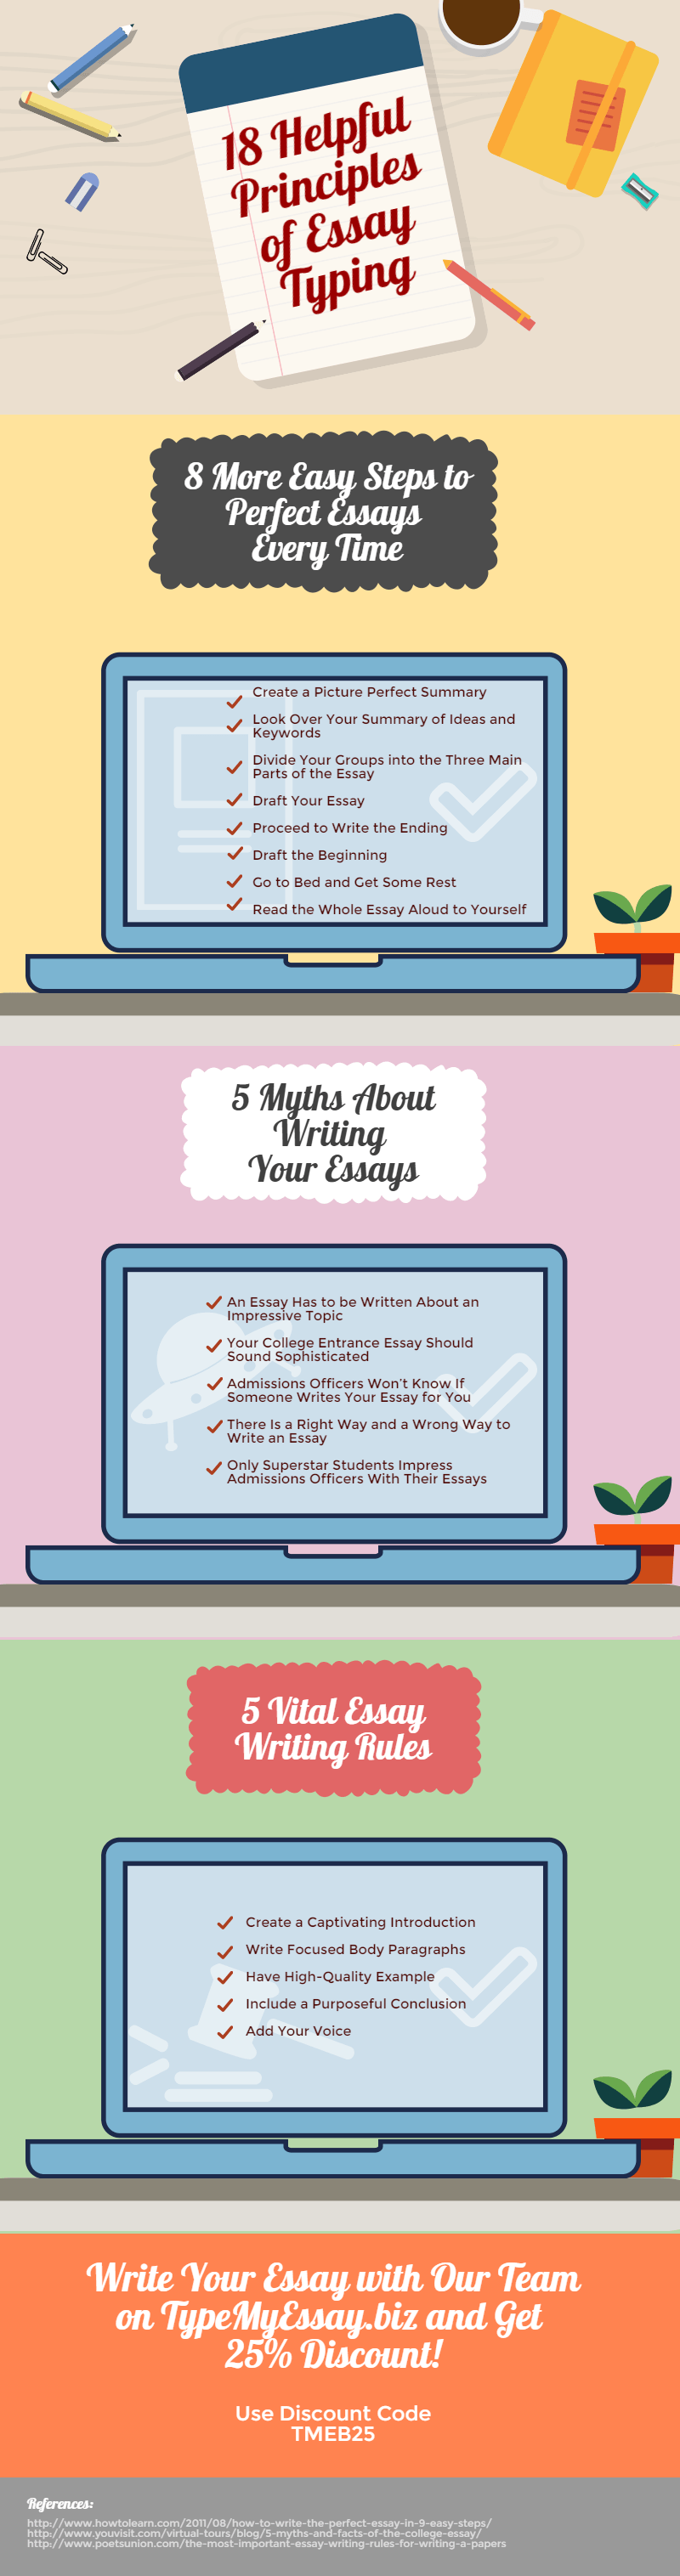 helpful principles of essay writing infographic e learning 18 helpful principles of essay writing infographic